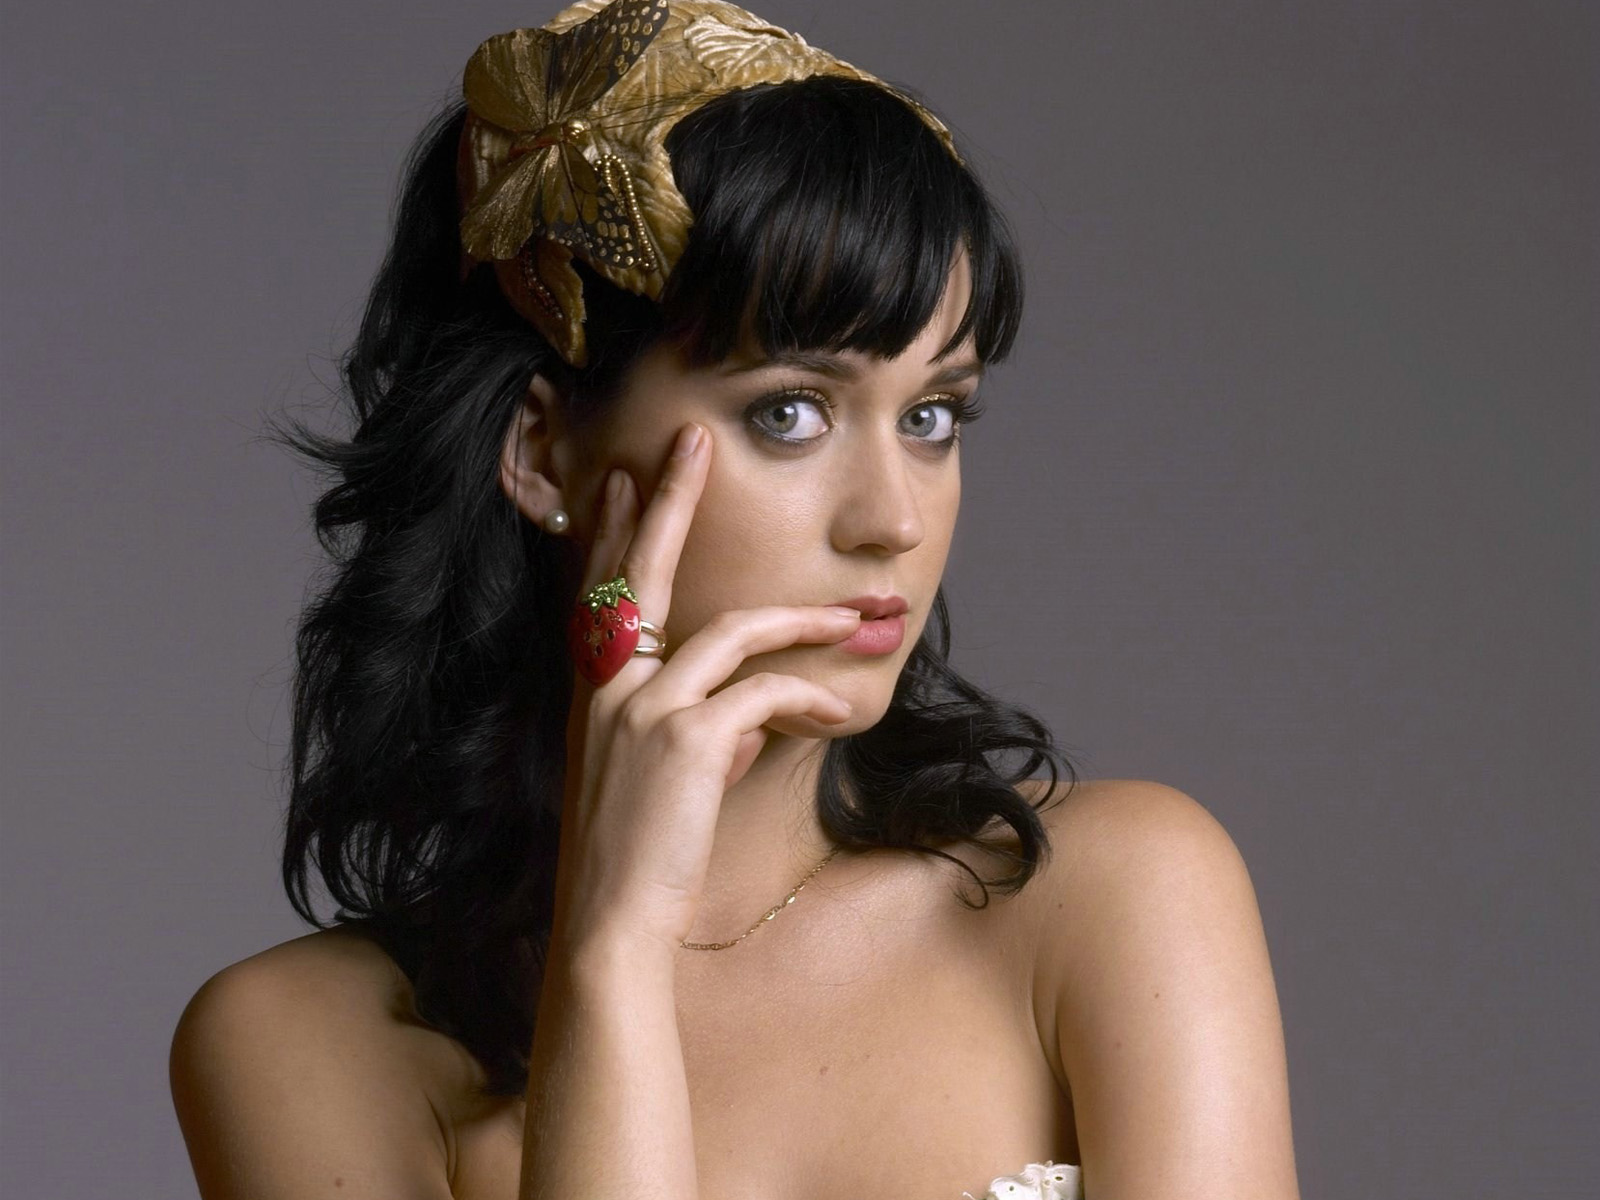 http://4.bp.blogspot.com/-vwDIFBwAvTI/Ts_CVc1p8iI/AAAAAAAADLs/mzm0mvjr26M/s1600/The-best-top-hd-desktop-katy-perry-wallpaper-katy-perry-wallpapers-12.jpg